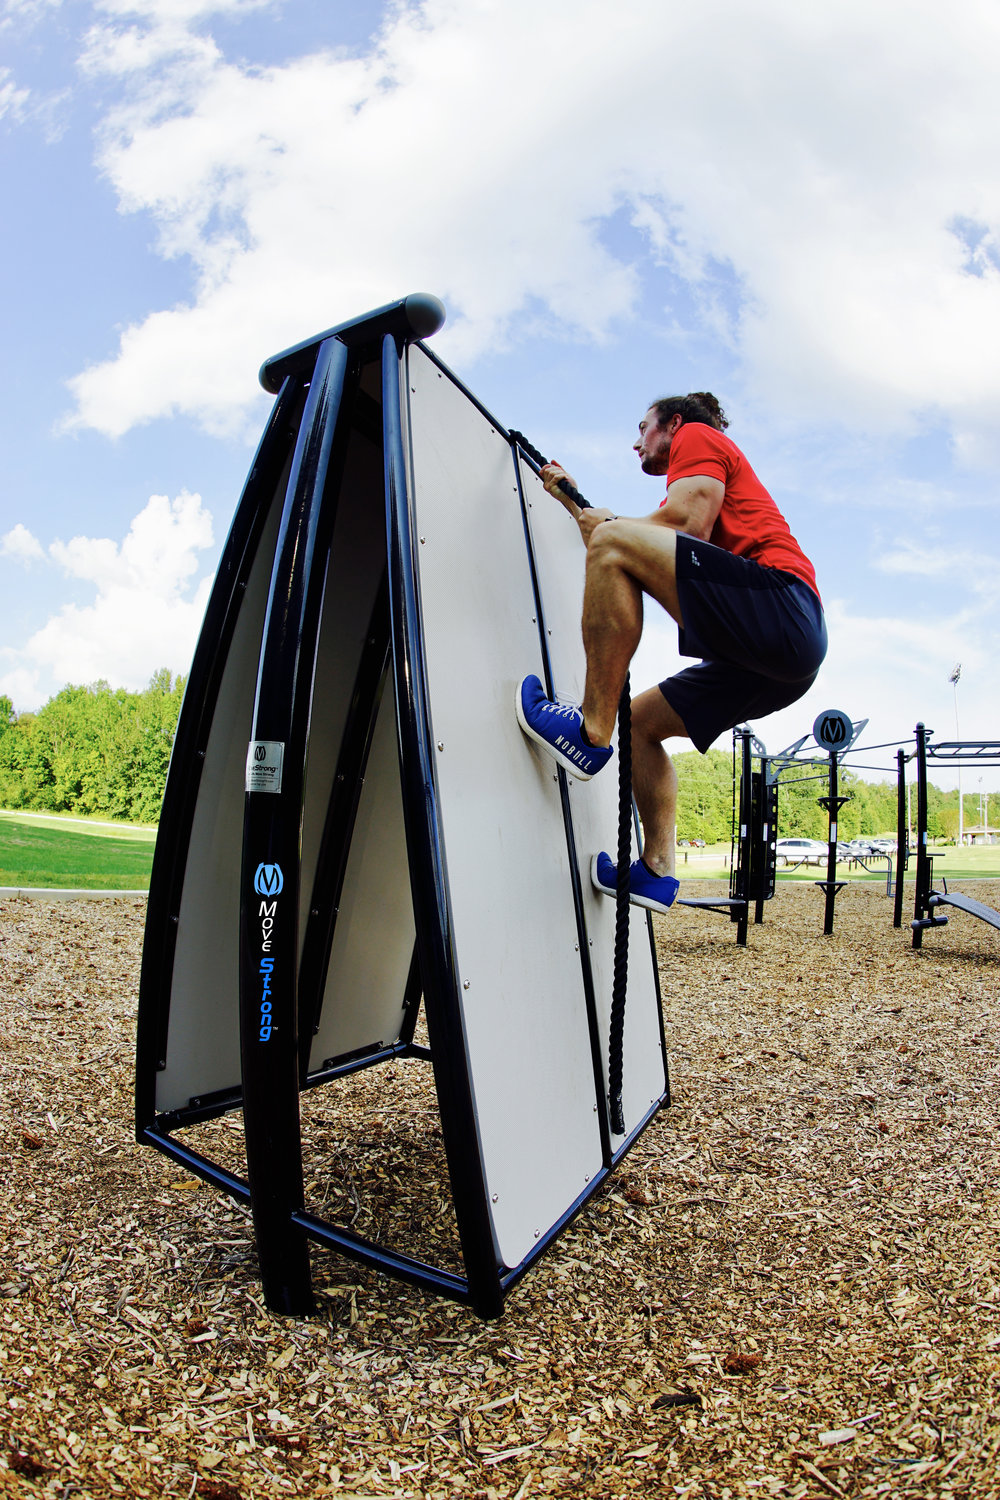 ole miss workout Awall climb2.jpg